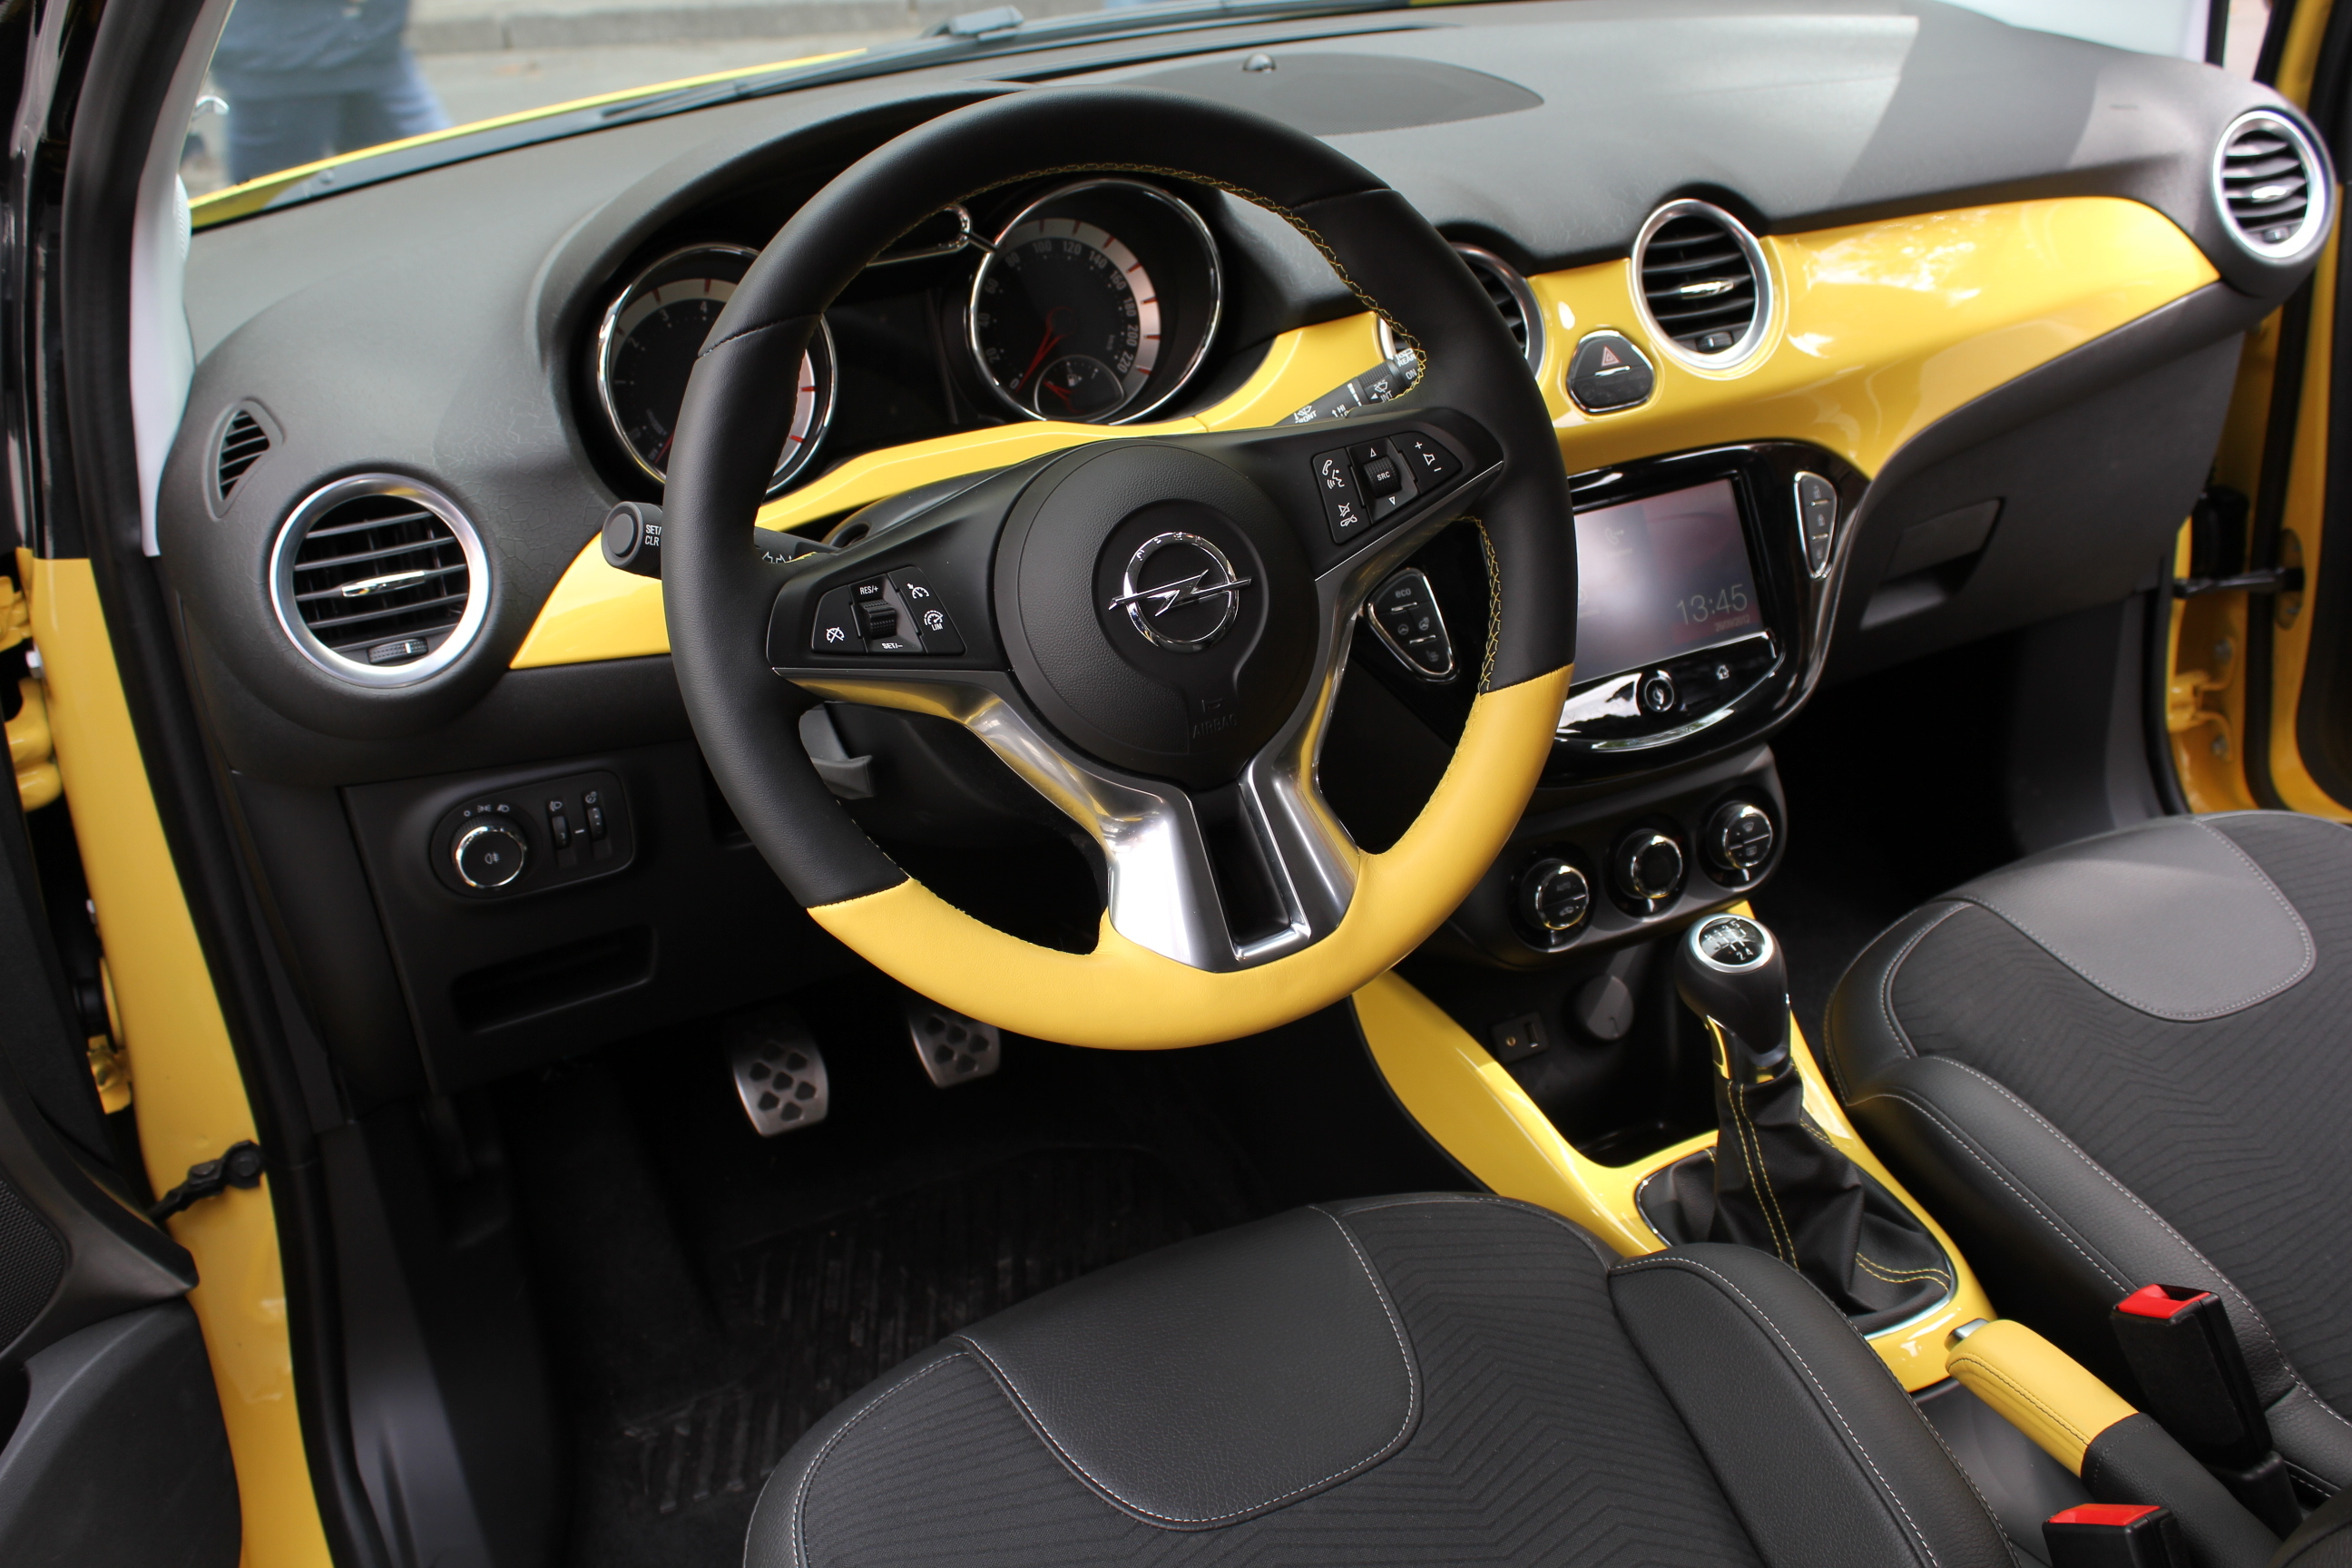 Vid o mondial de paris 2012 l 39 opel adam en avant premi re for Opel adam s interieur